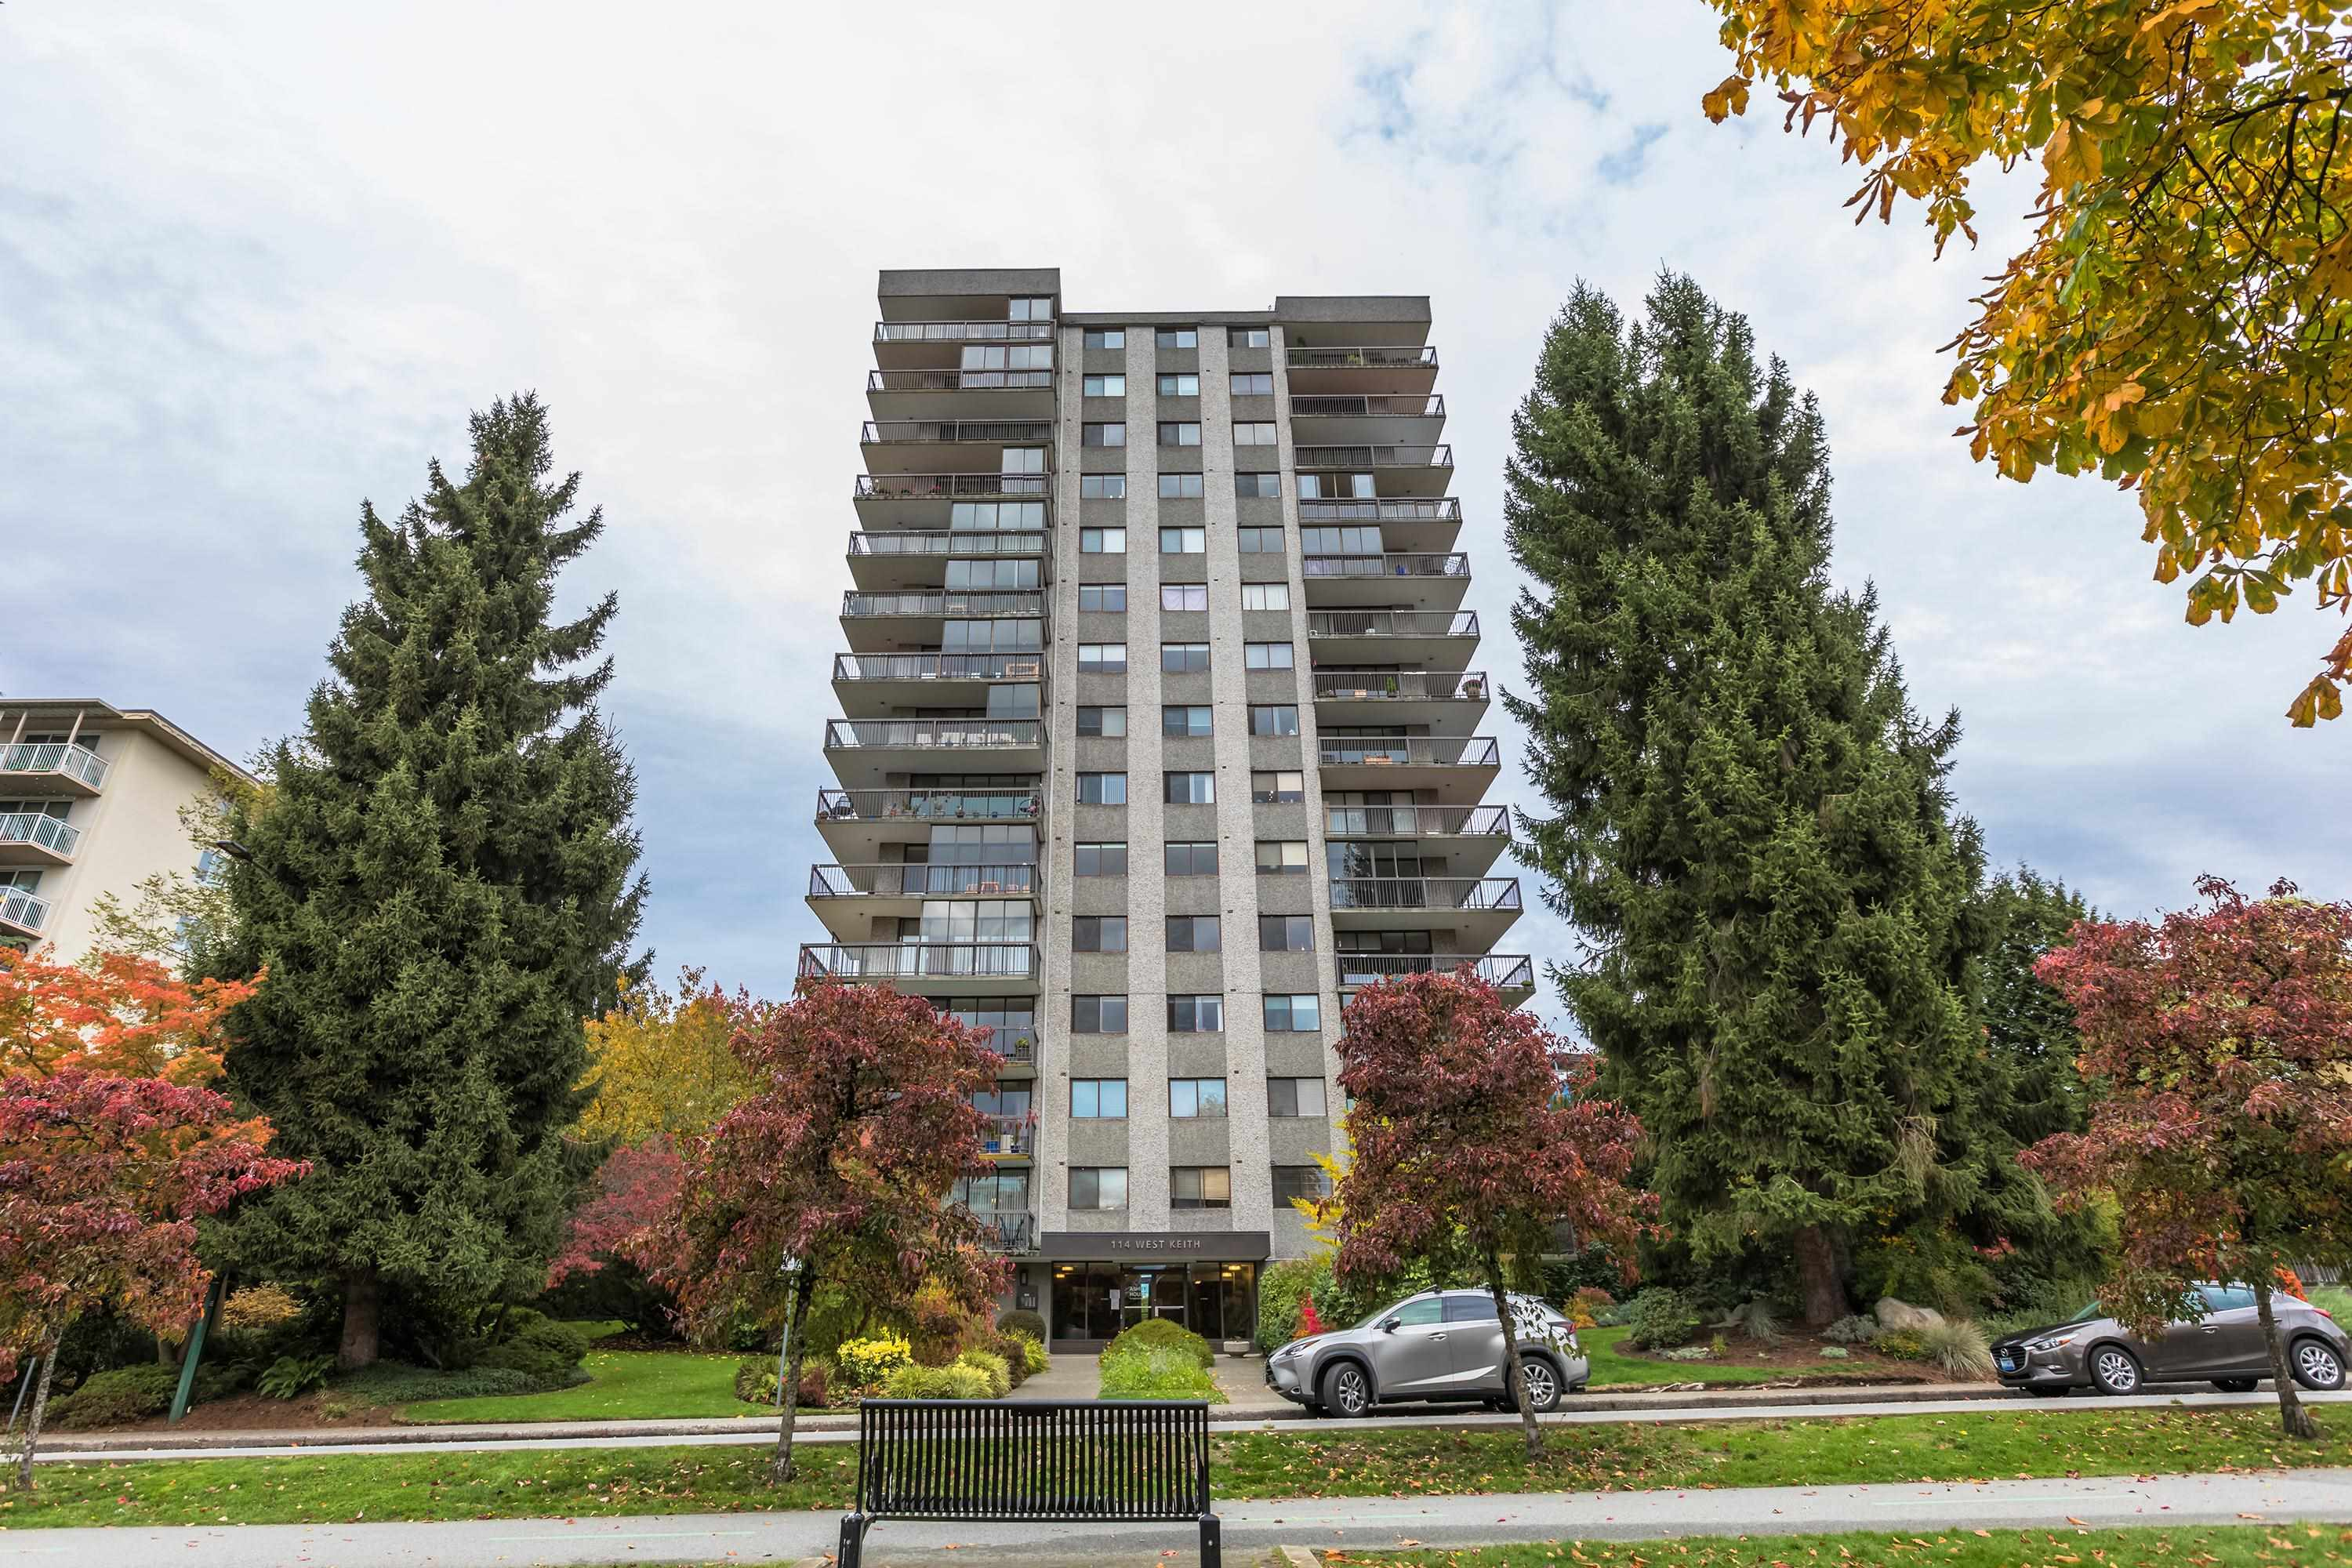 503 114 W KEITH ROAD - Central Lonsdale Apartment/Condo for sale, 2 Bedrooms (R2628338) - #1